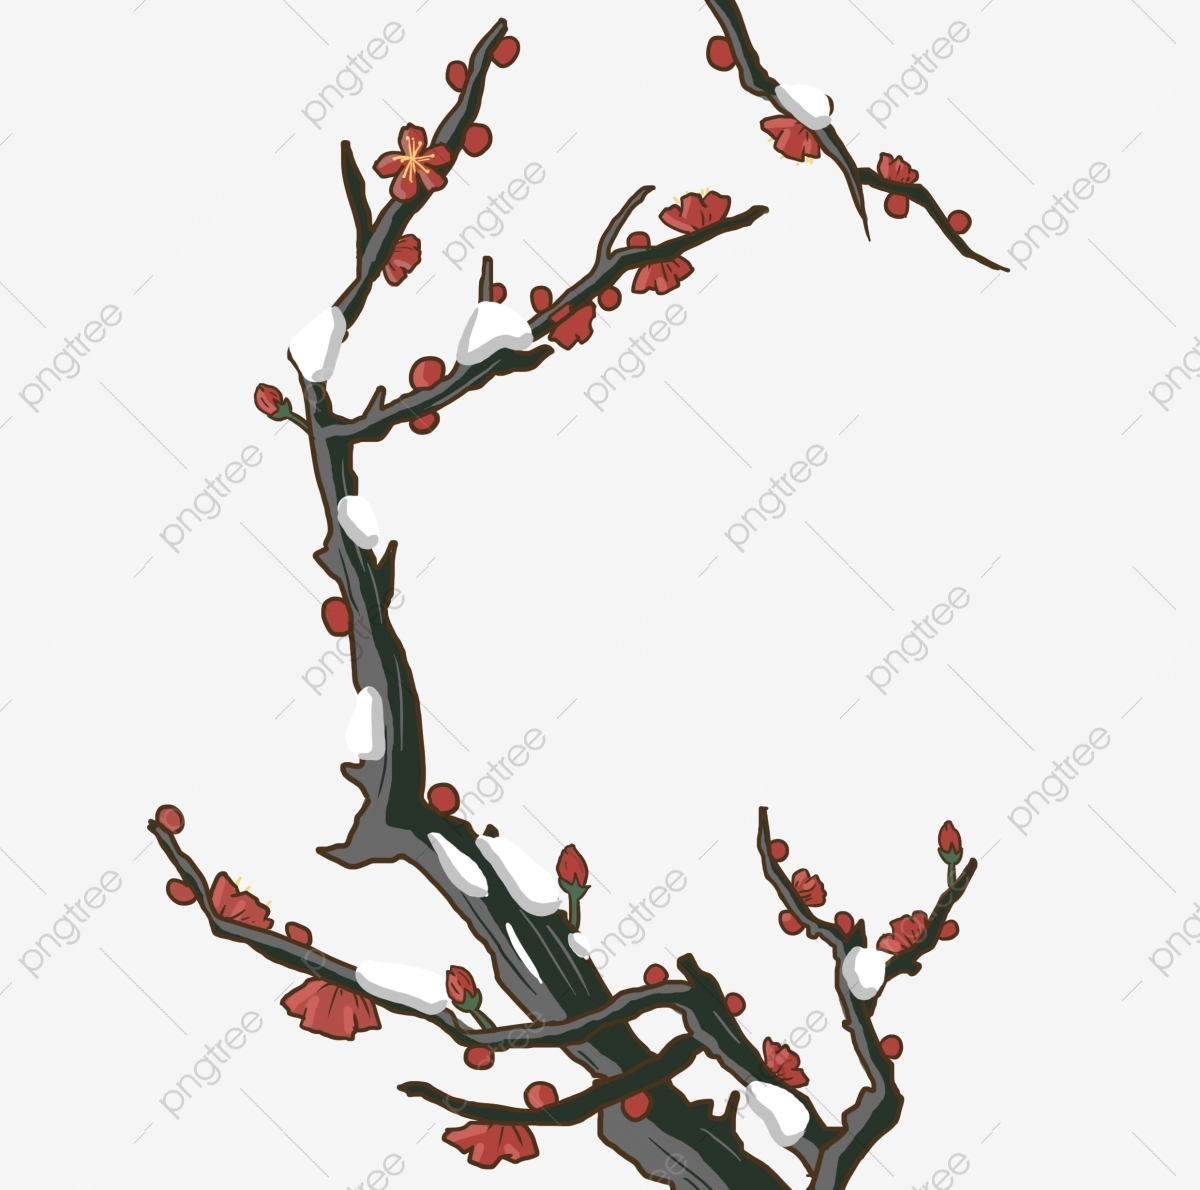 Free clipart branches with snow on them holly. Hand painted red plum